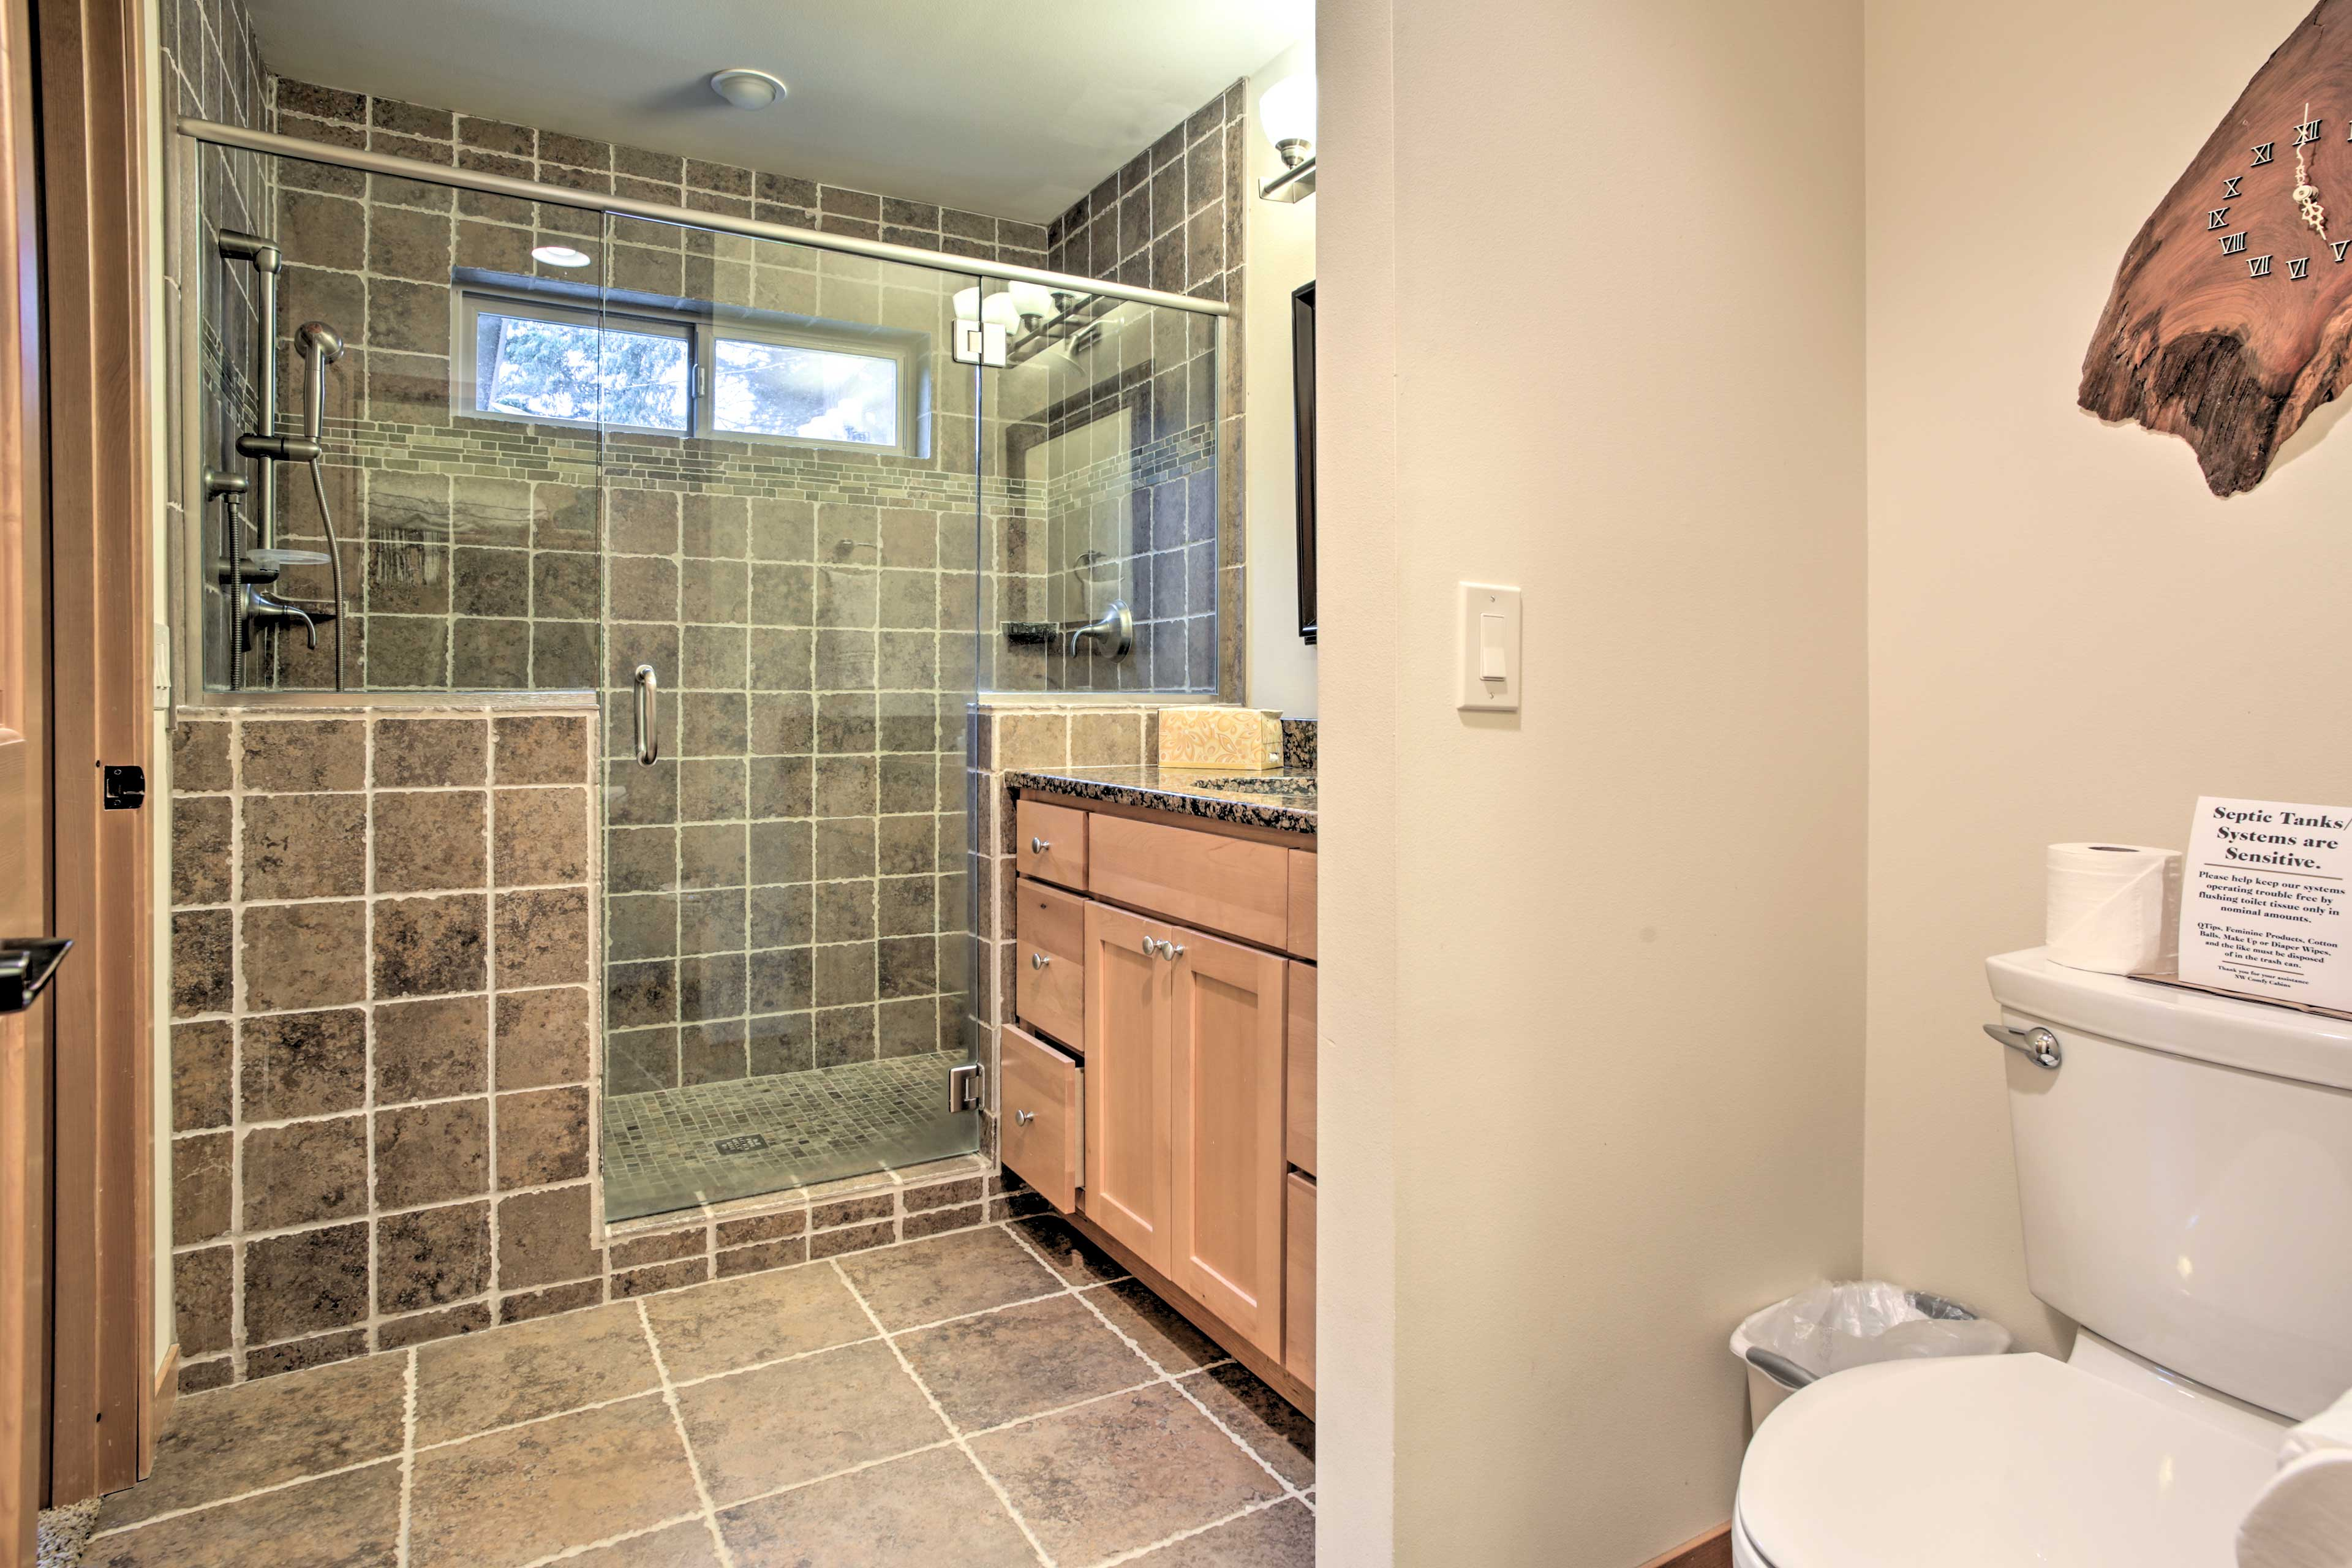 The walk-in shower is sure to impress.